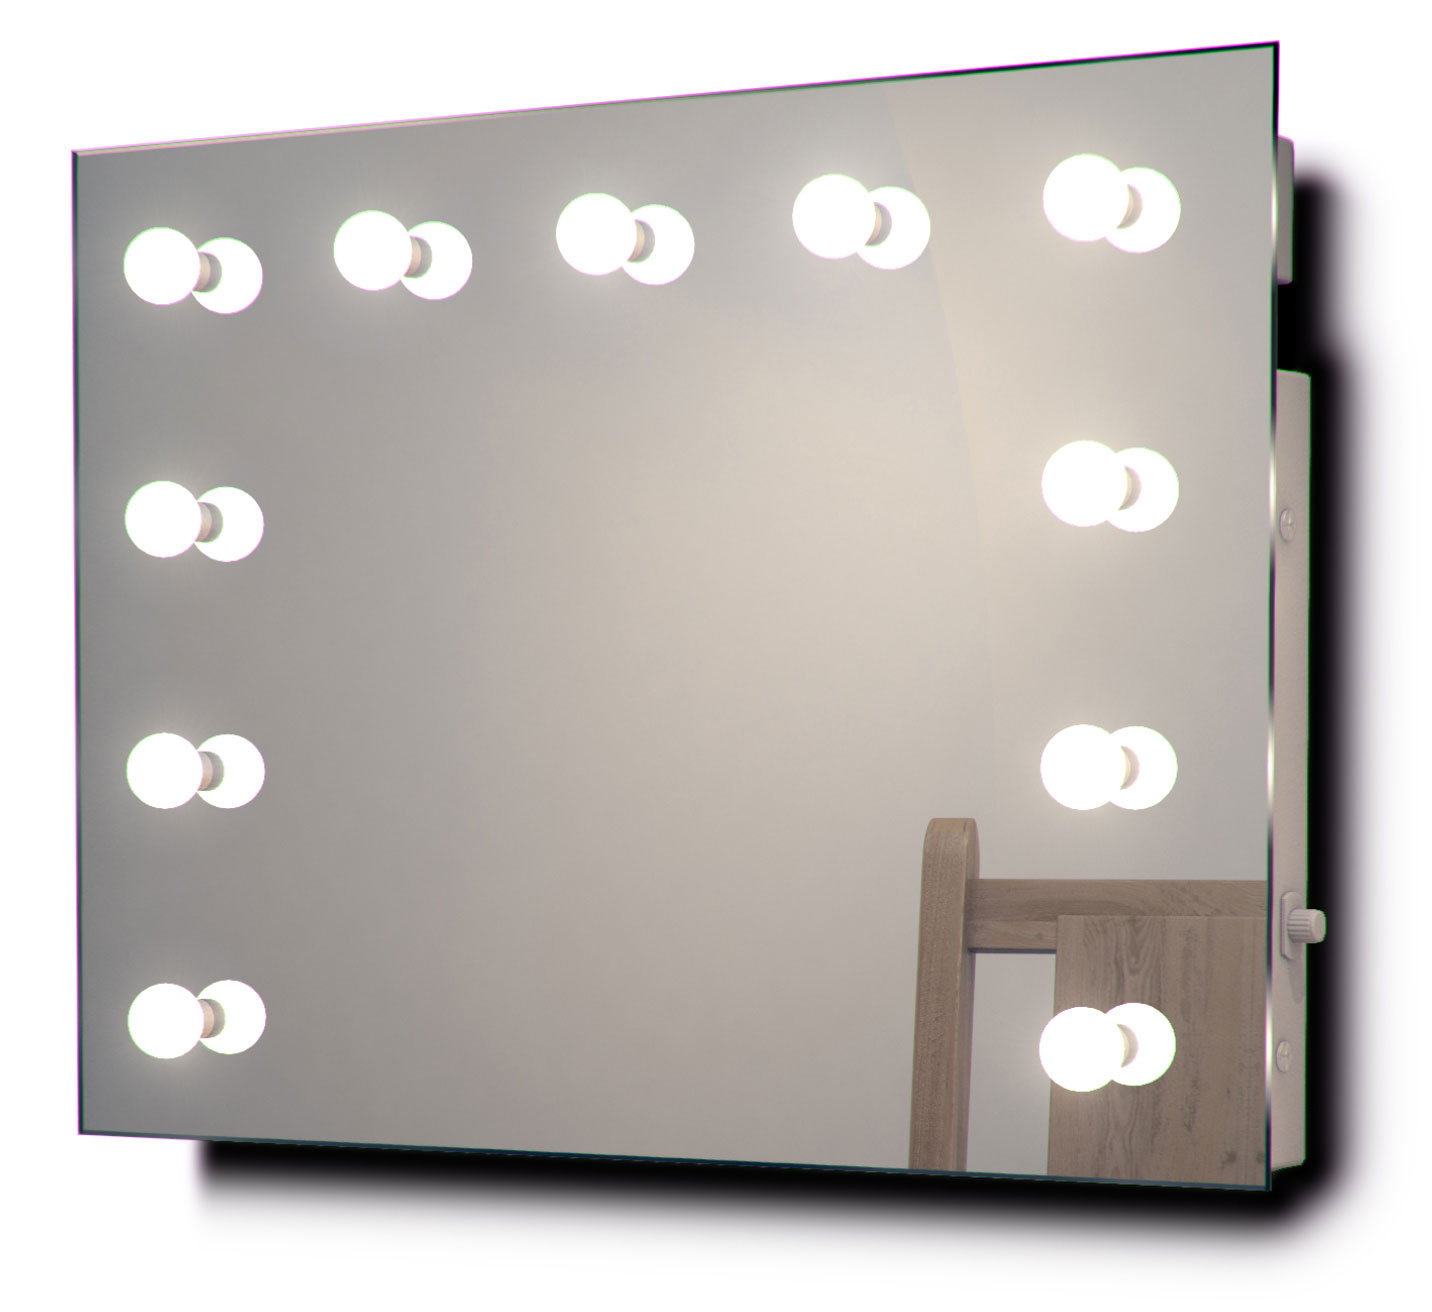 miroir de maquillage hollywood vestiaire avec lampes led graduables k95led. Black Bedroom Furniture Sets. Home Design Ideas